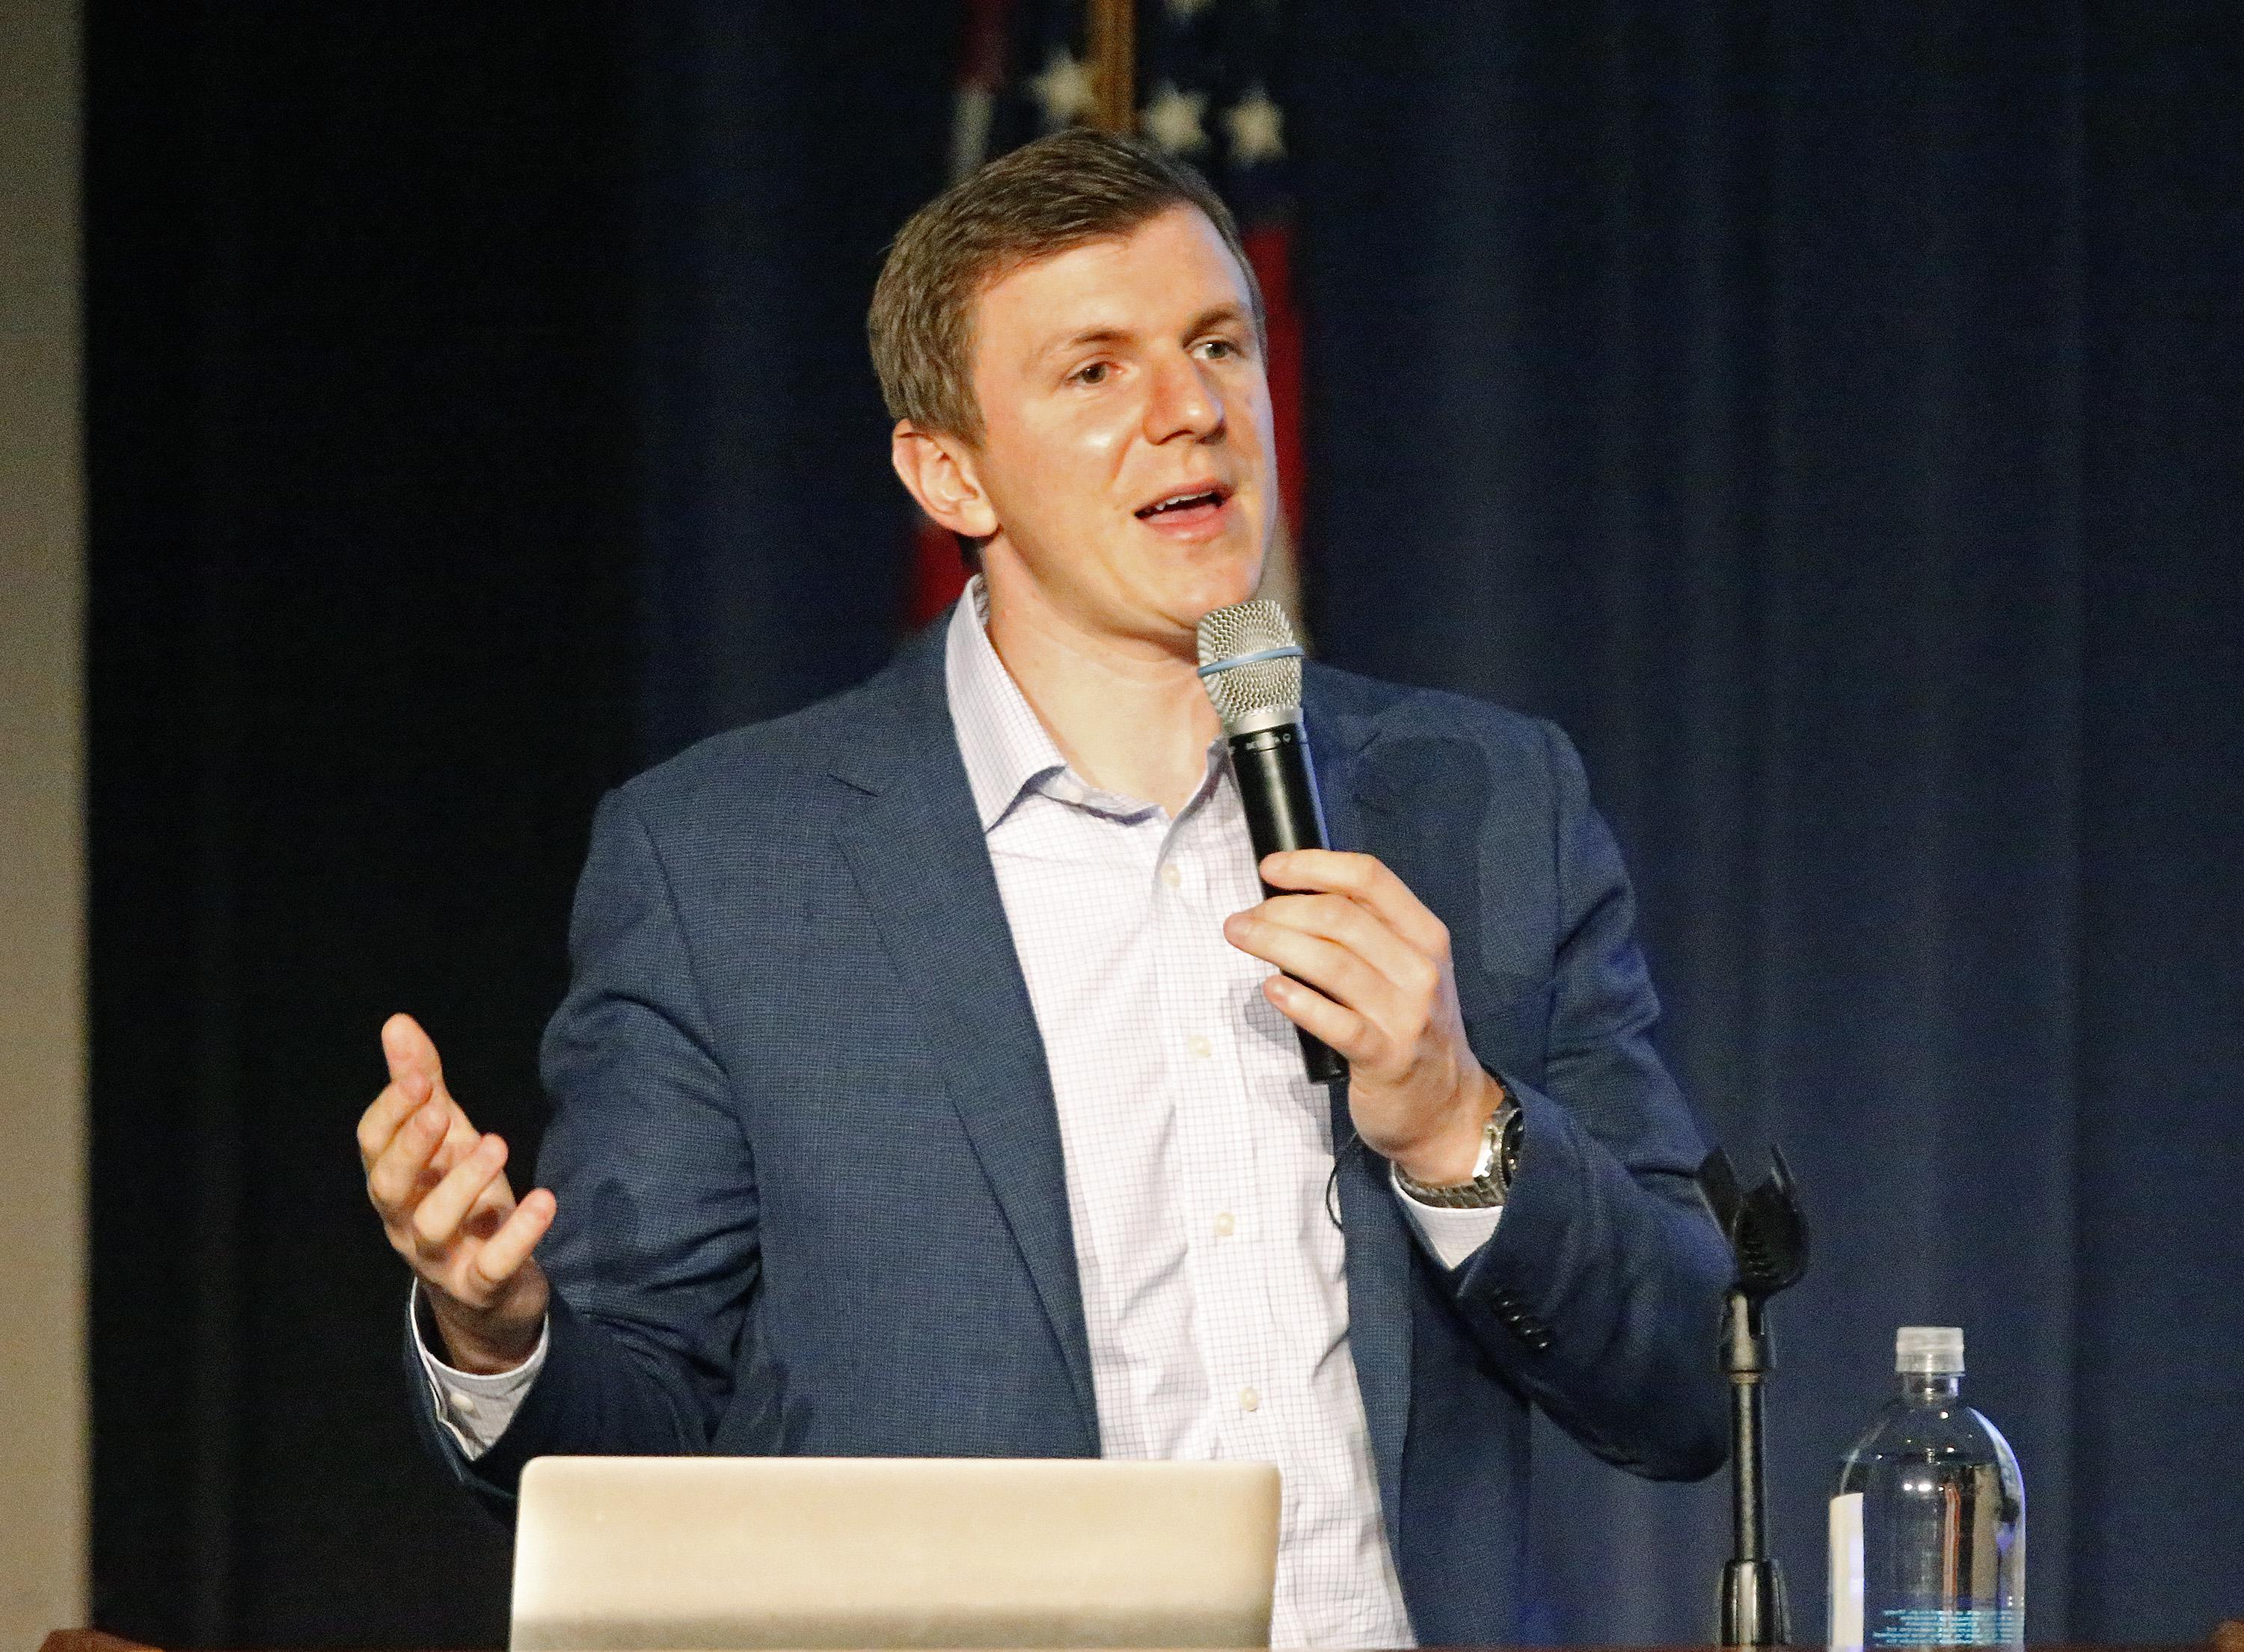 Conservative media activist James O'Keefe has released two undercover investigations of Twitter.